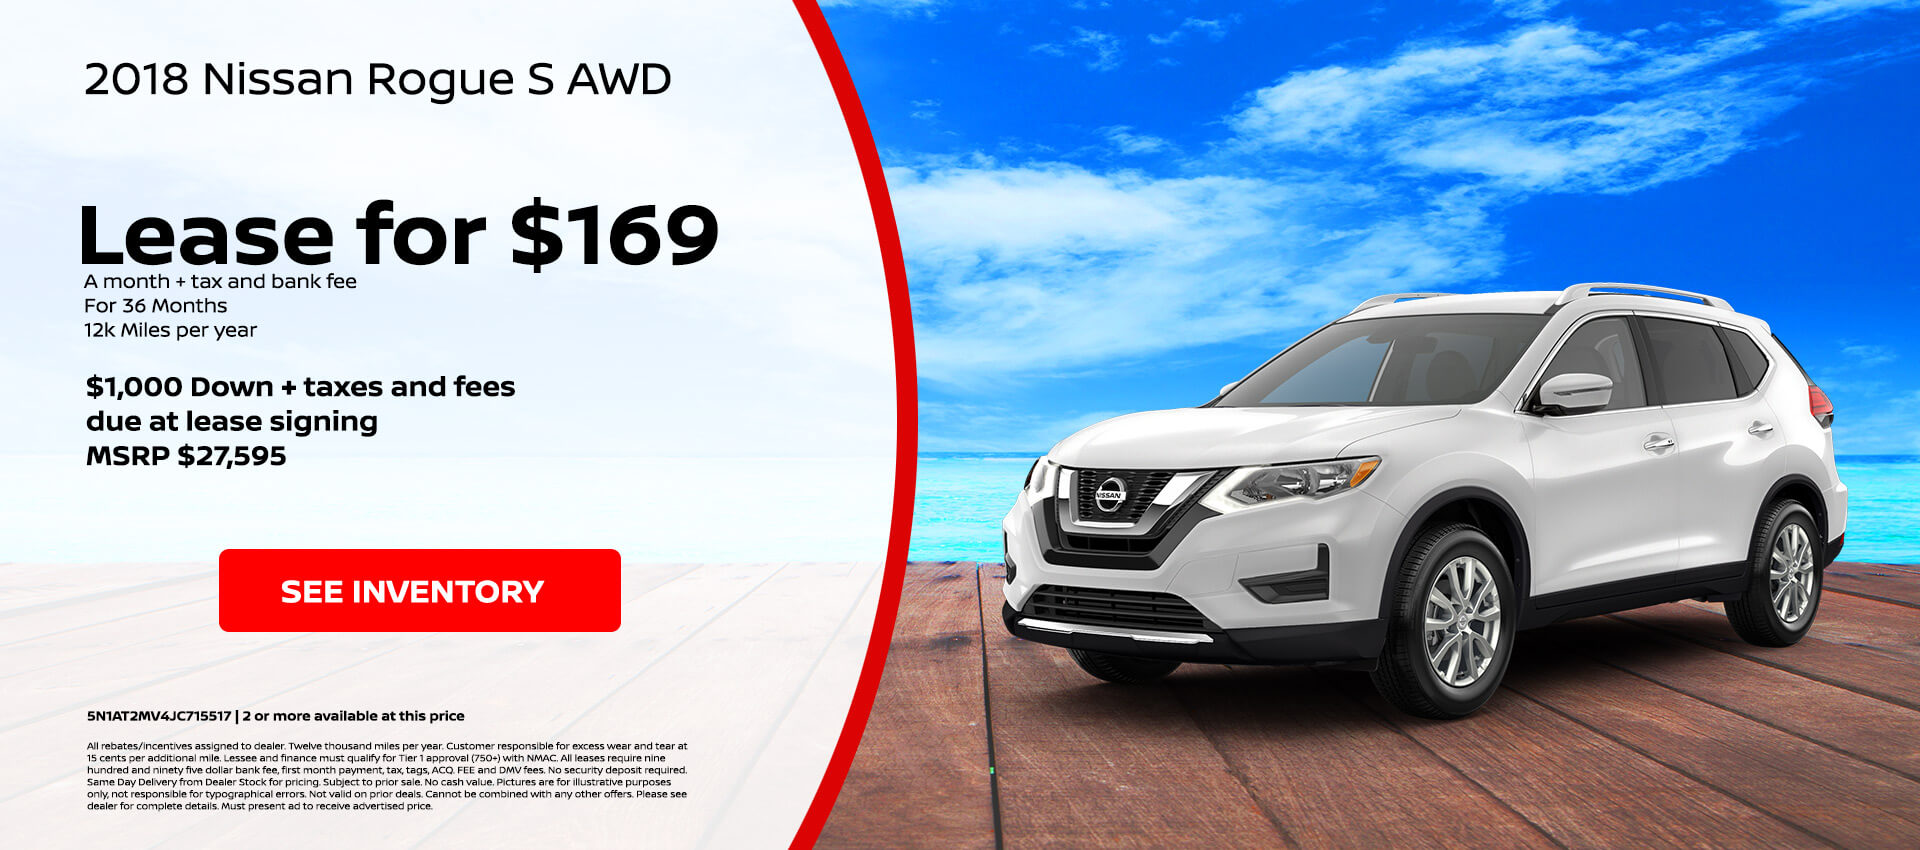 Nissan Rogue S $169 Lease